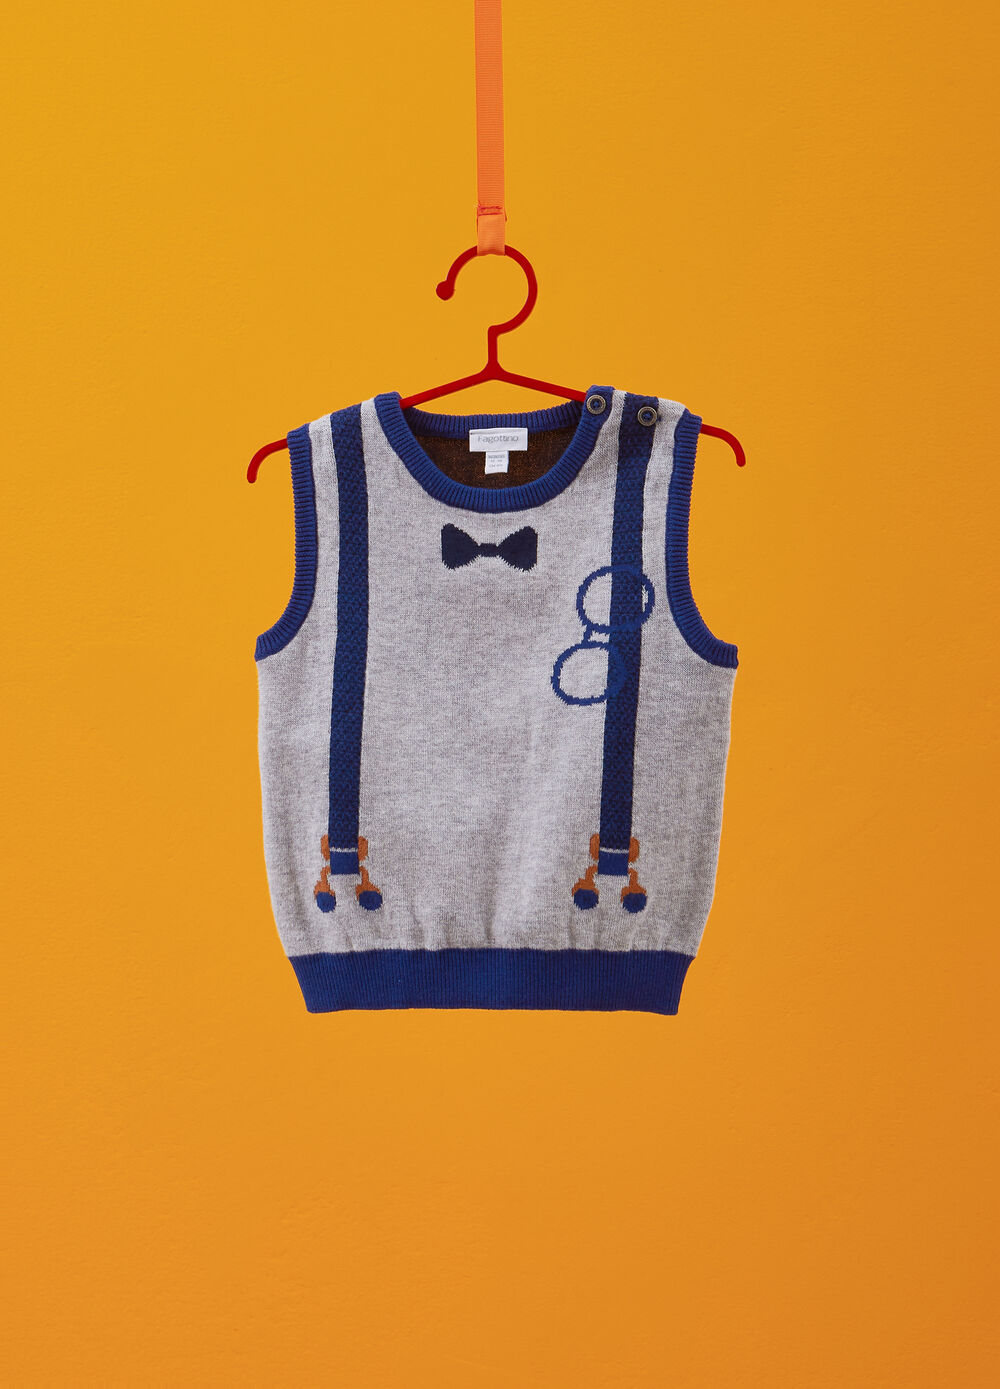 Knitted waistcoat in 100% cotton with printed braces